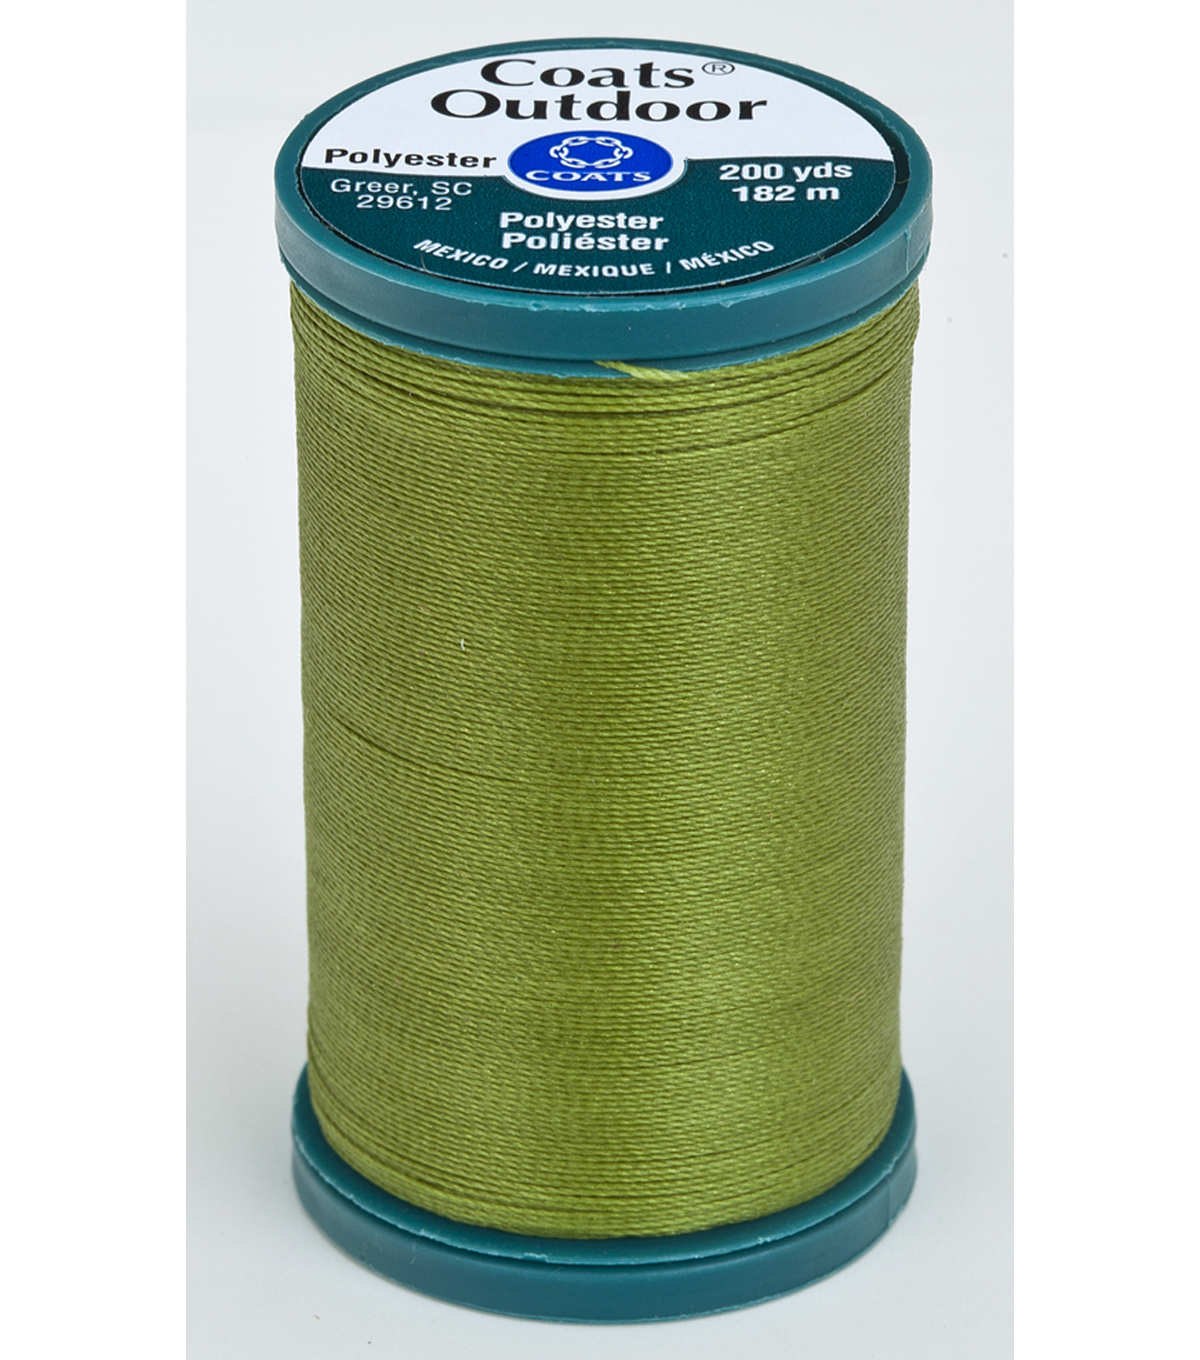 Coats & Clark Outdoor 200yd Thread, Coats Outdoor 200yd Chartreuse